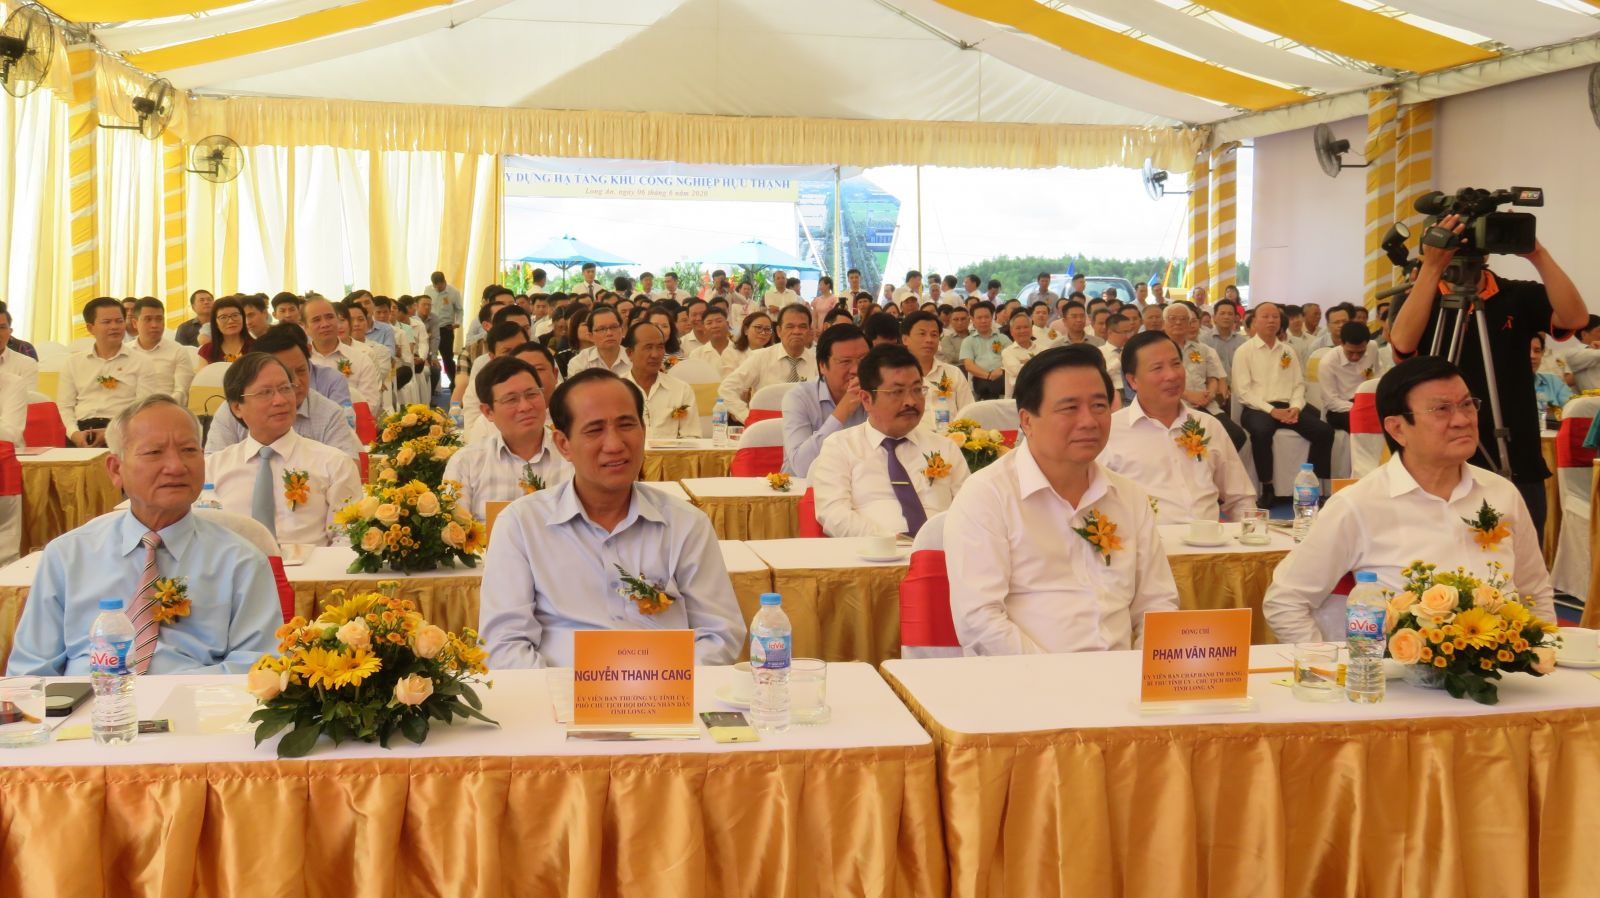 Delegates attended the groundbreaking ceremony